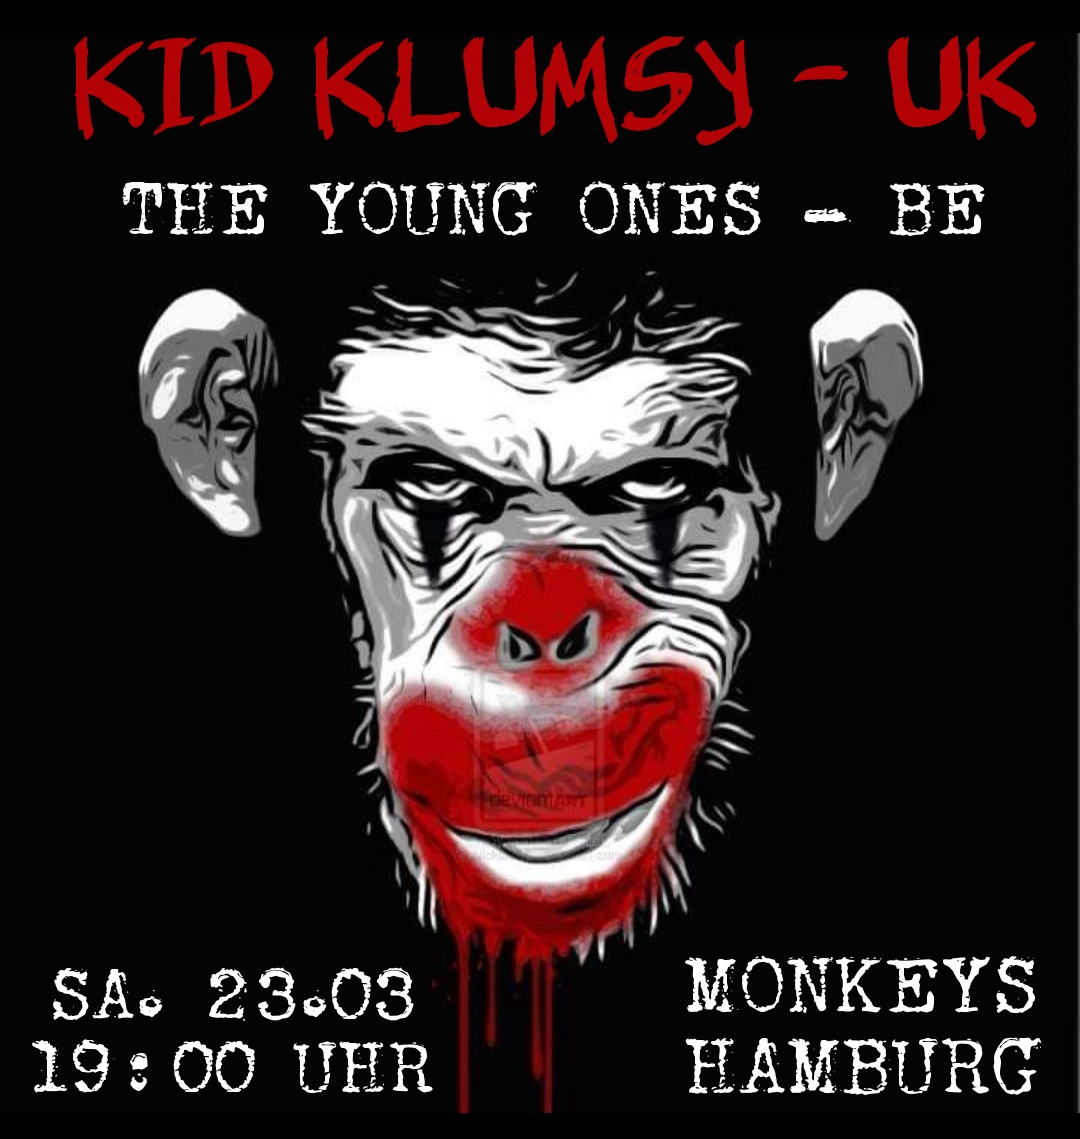 Preview: KID KLUMSY - UK + THE YOUNG ONES - B